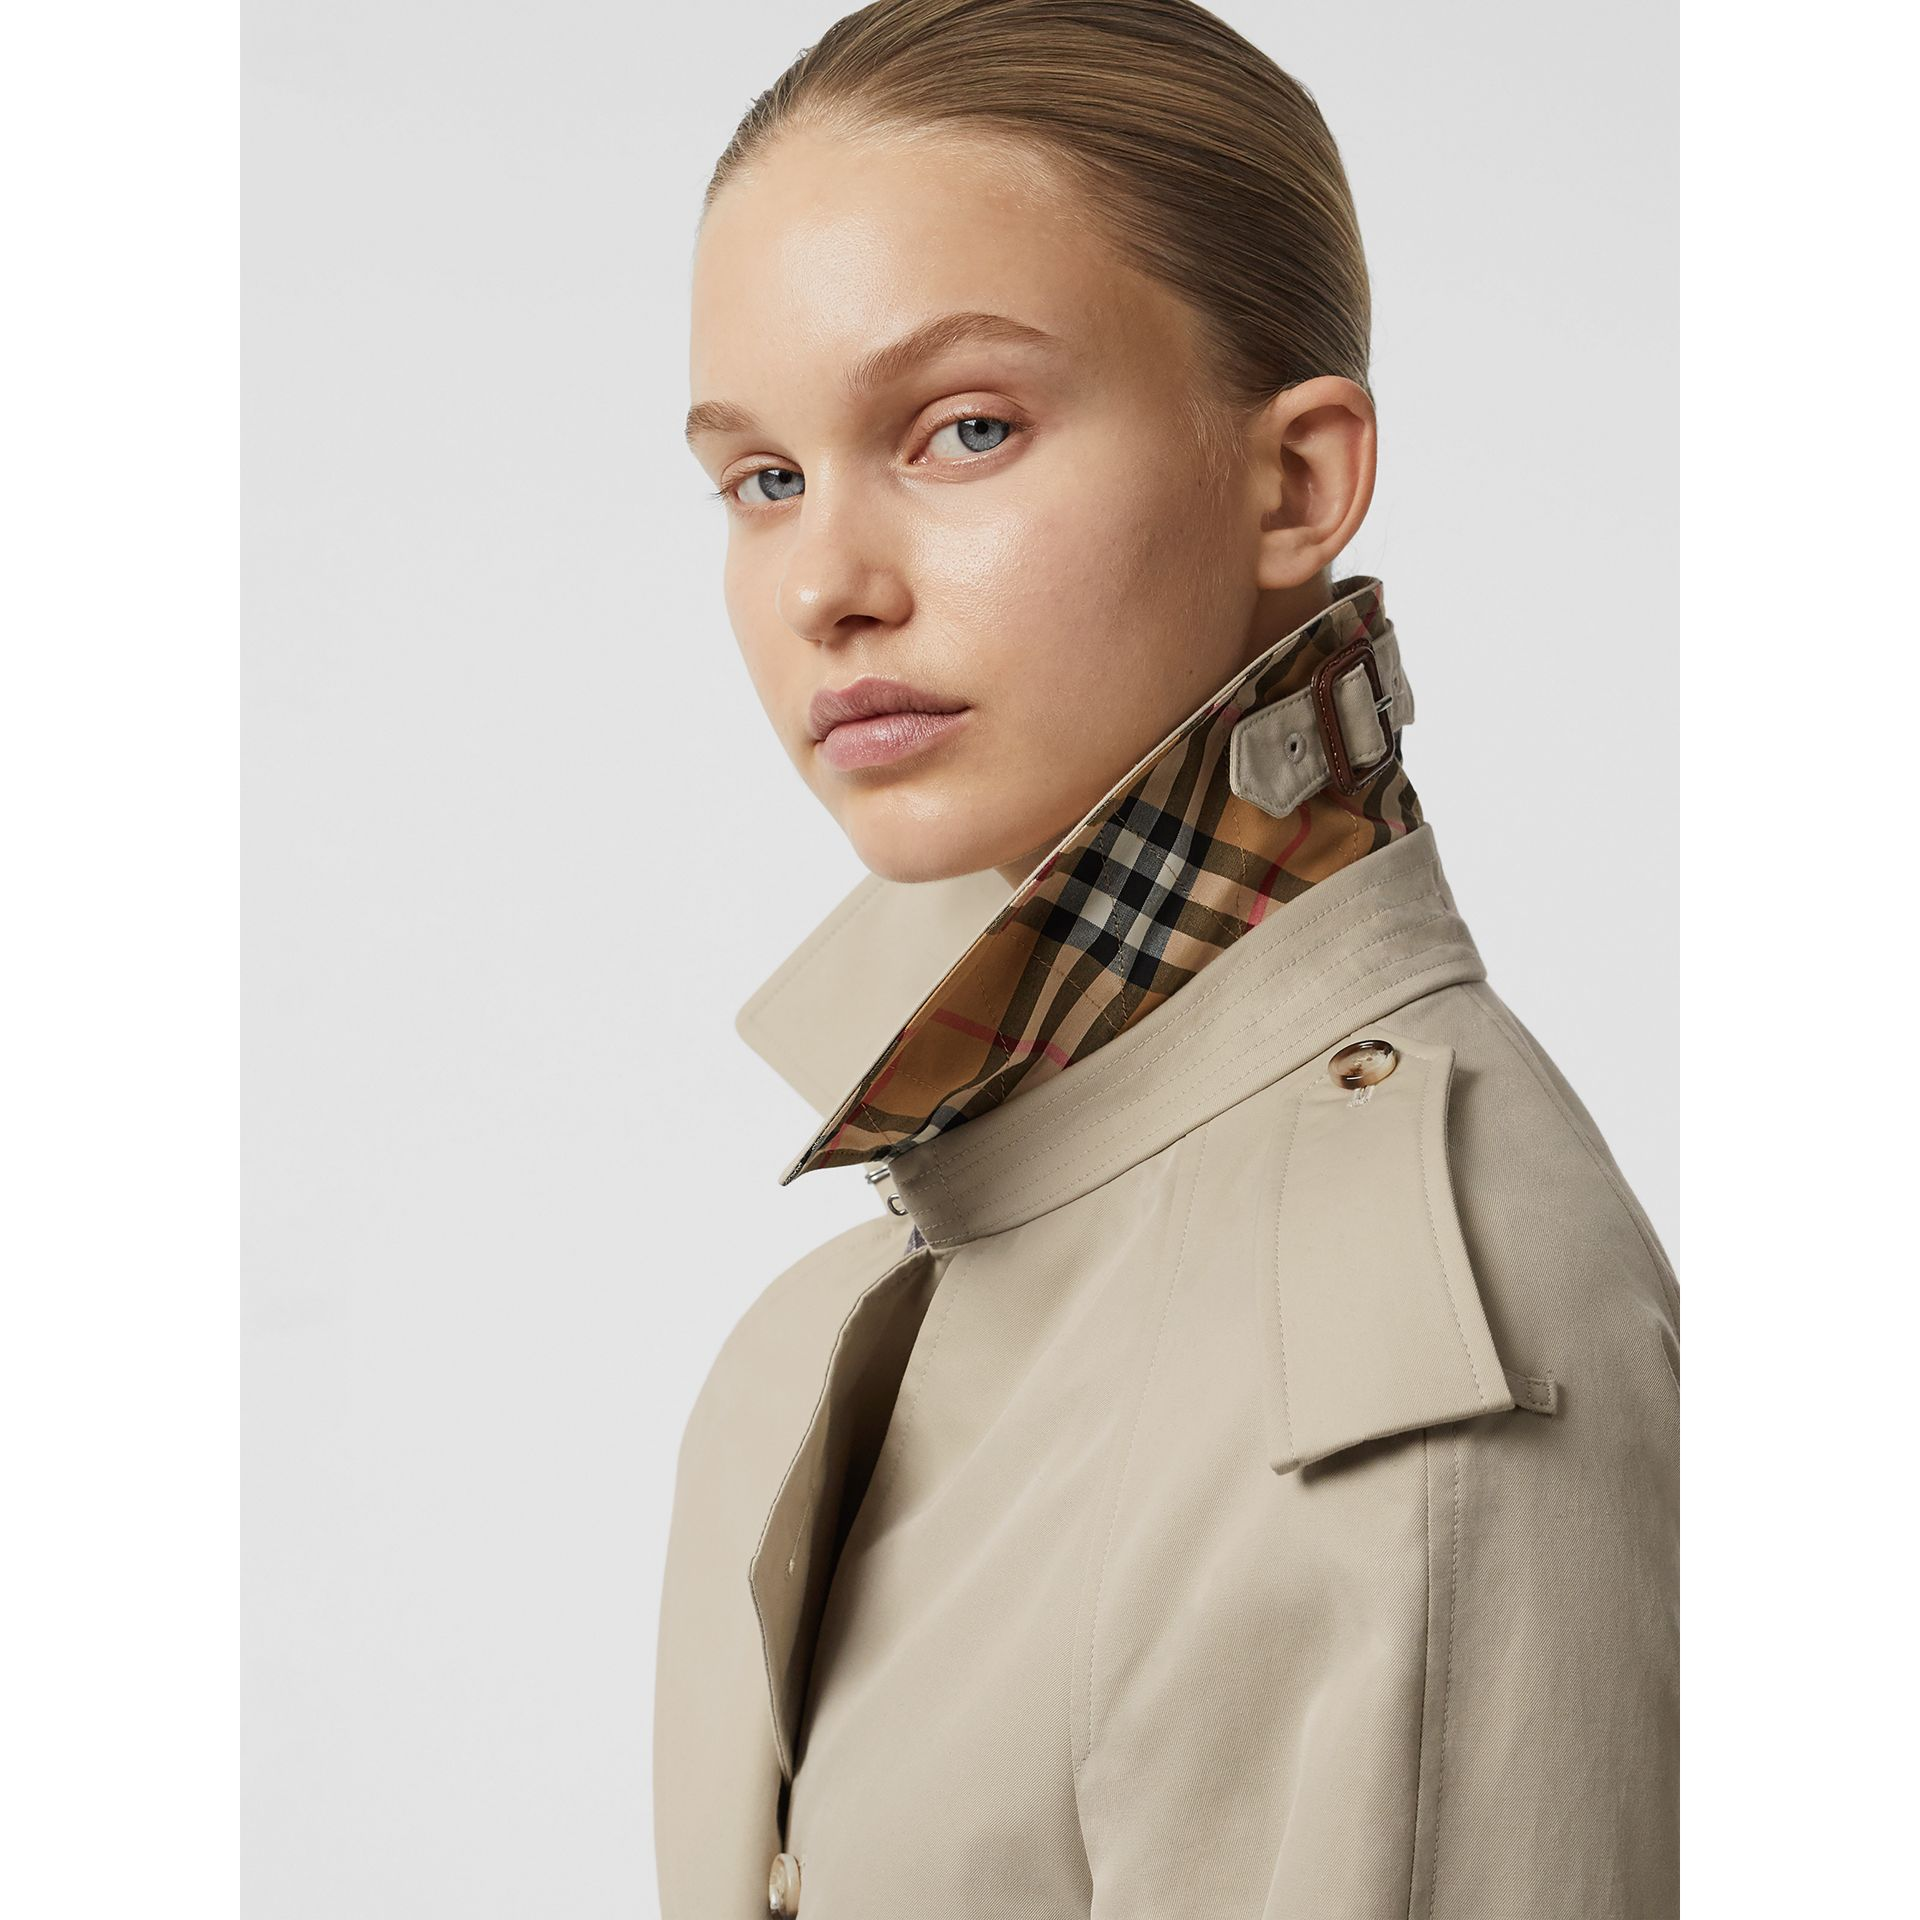 Grommet Detail Cotton Gabardine Trench Coat in Stone - Women | Burberry United Kingdom - gallery image 5